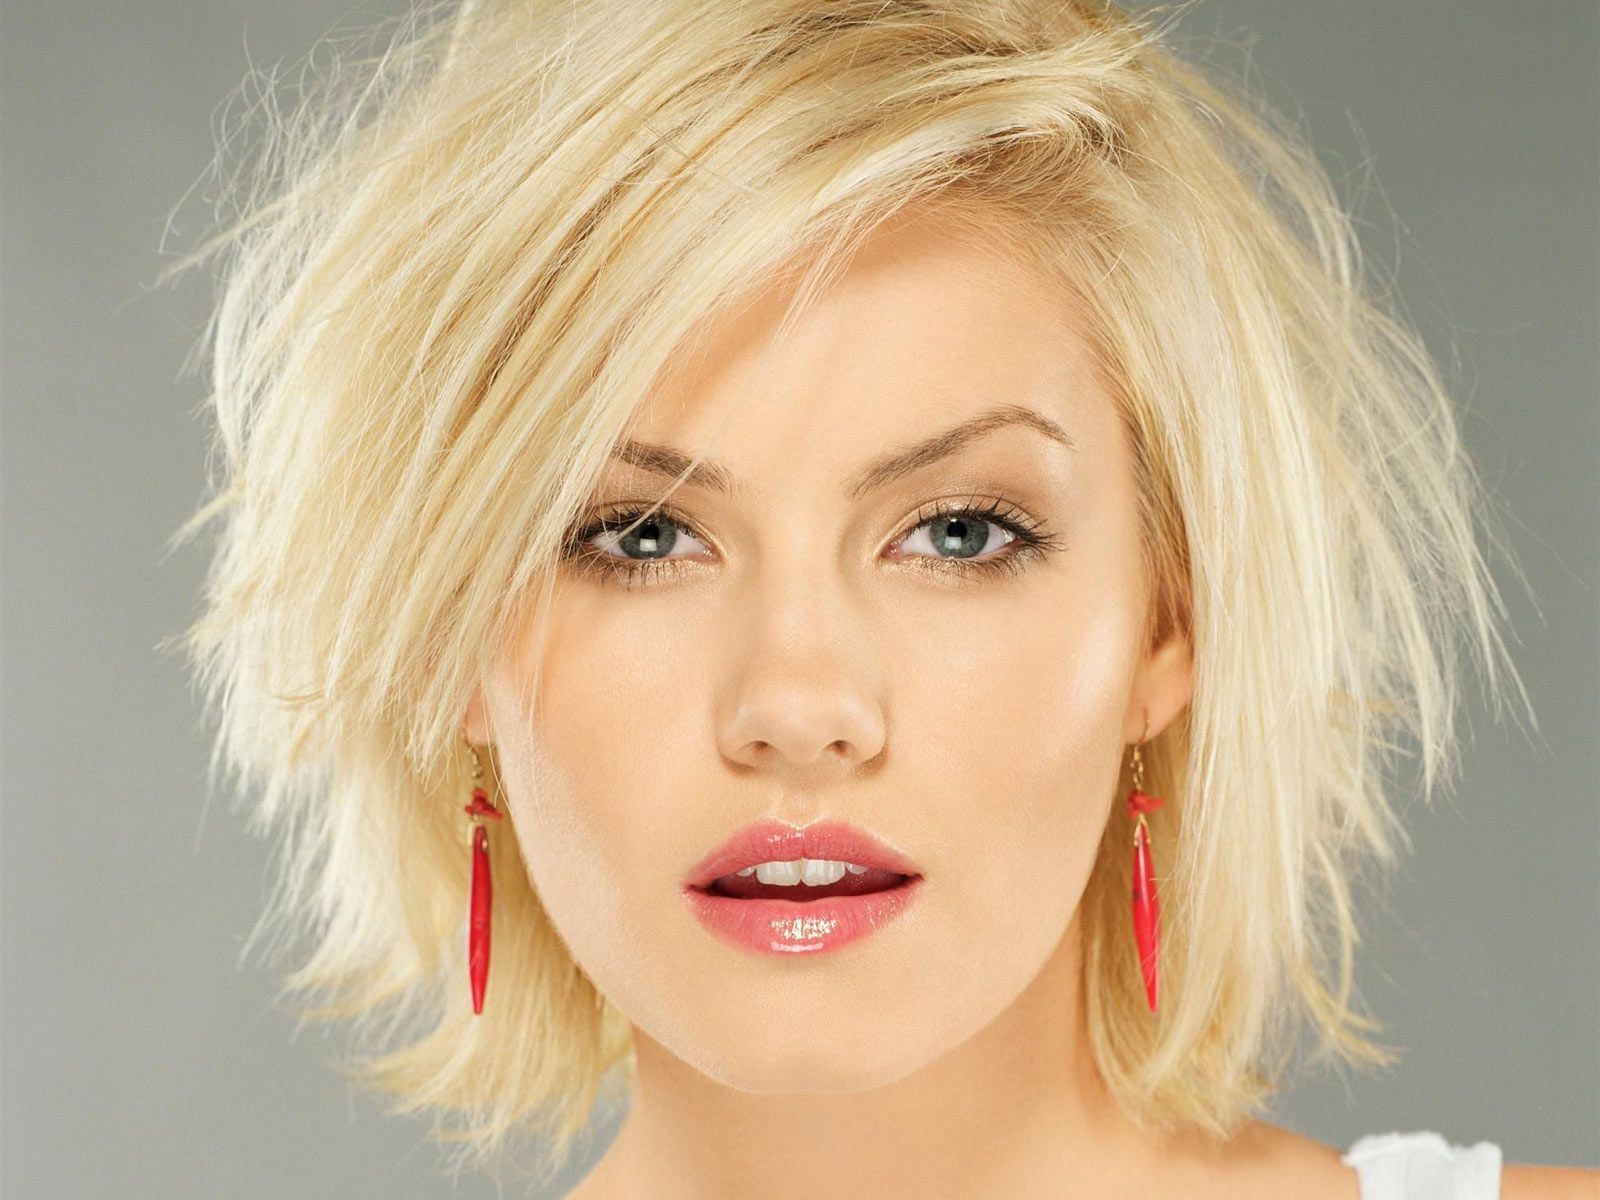 Female Celebrity With Blonde Hair And Blue Eyes Thick Hair Styles Hair Styles Shaggy Short Hair